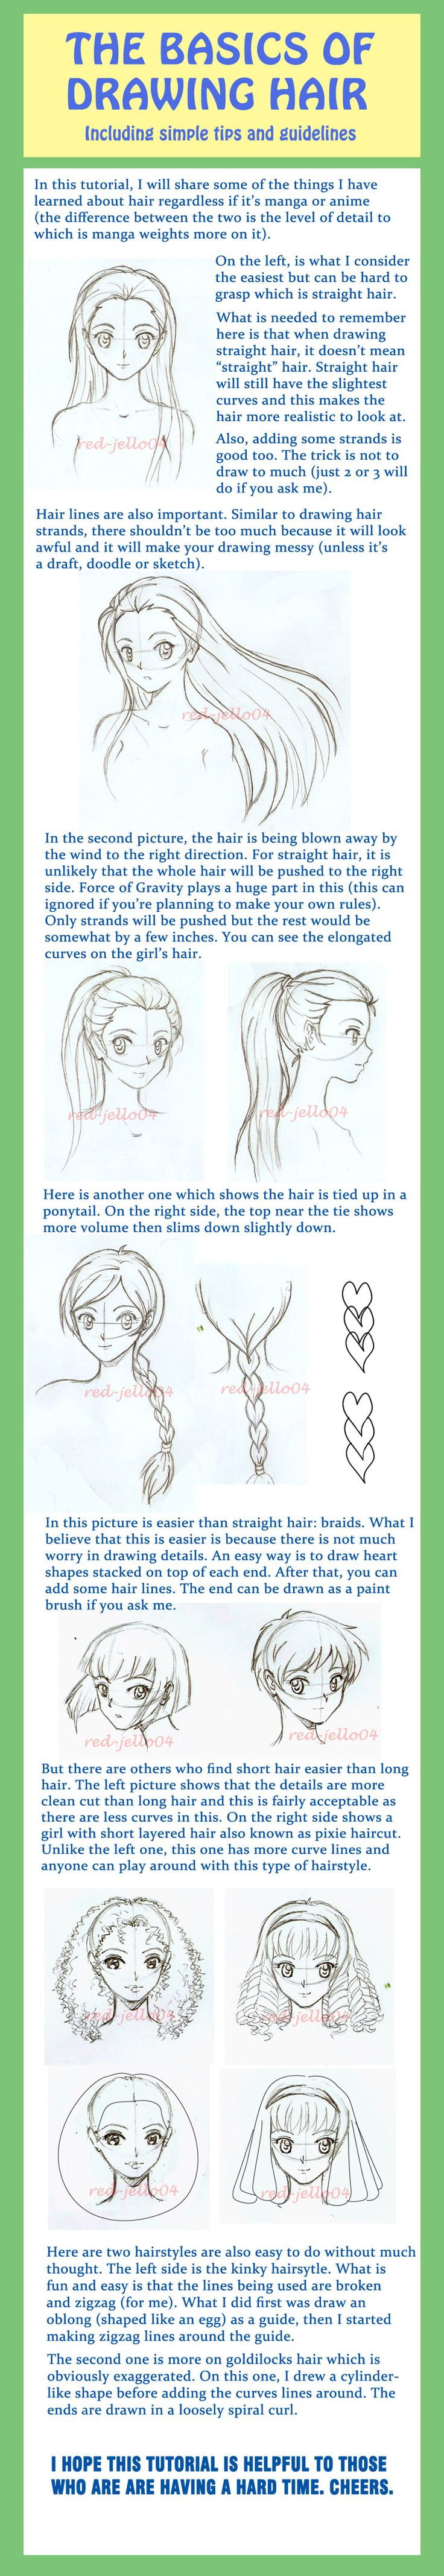 This isn't mine but maybe it could help for some people like me that can't really draw hair.